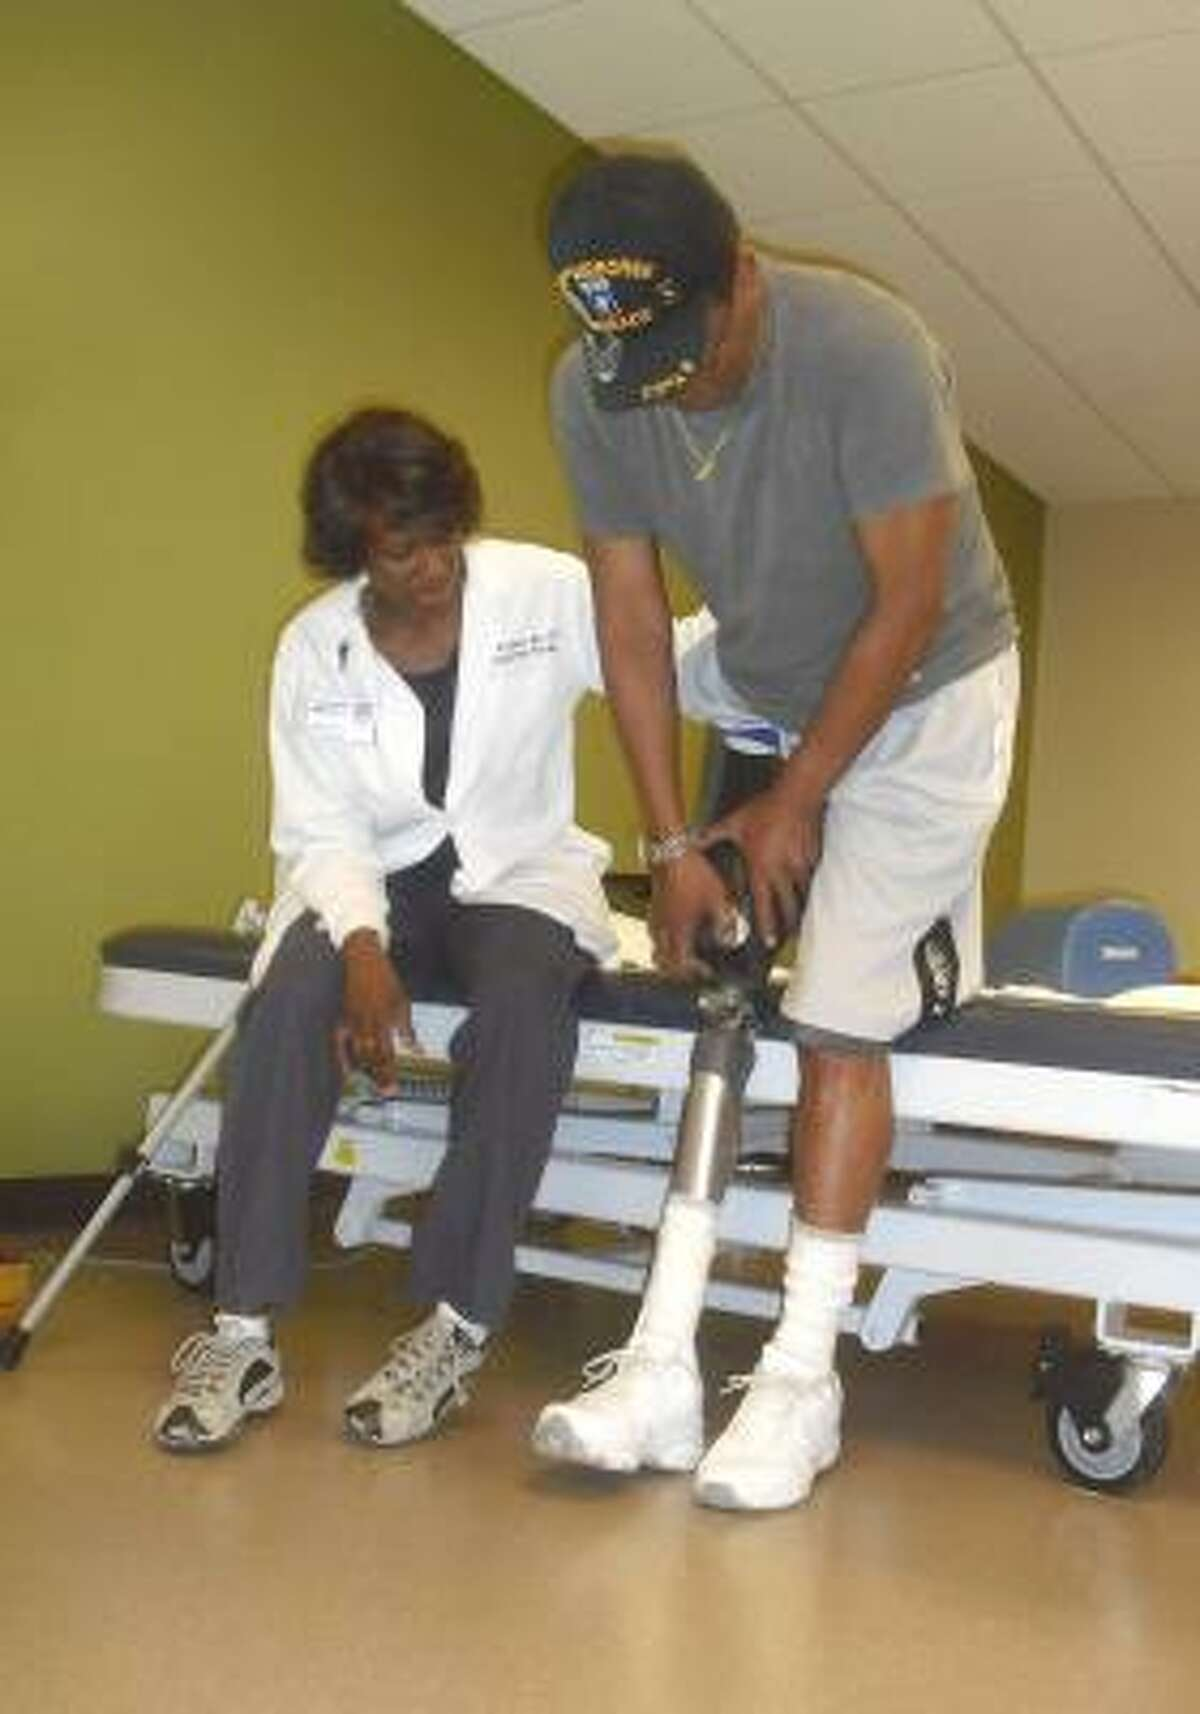 SKILLS FOR LIVING: Judith Jenkins, OTR, MA, a senior occupational therapist at The Methodist Hospital, works with Jeffrey Barnes, who has had a prosthetic leg for the past seven months.